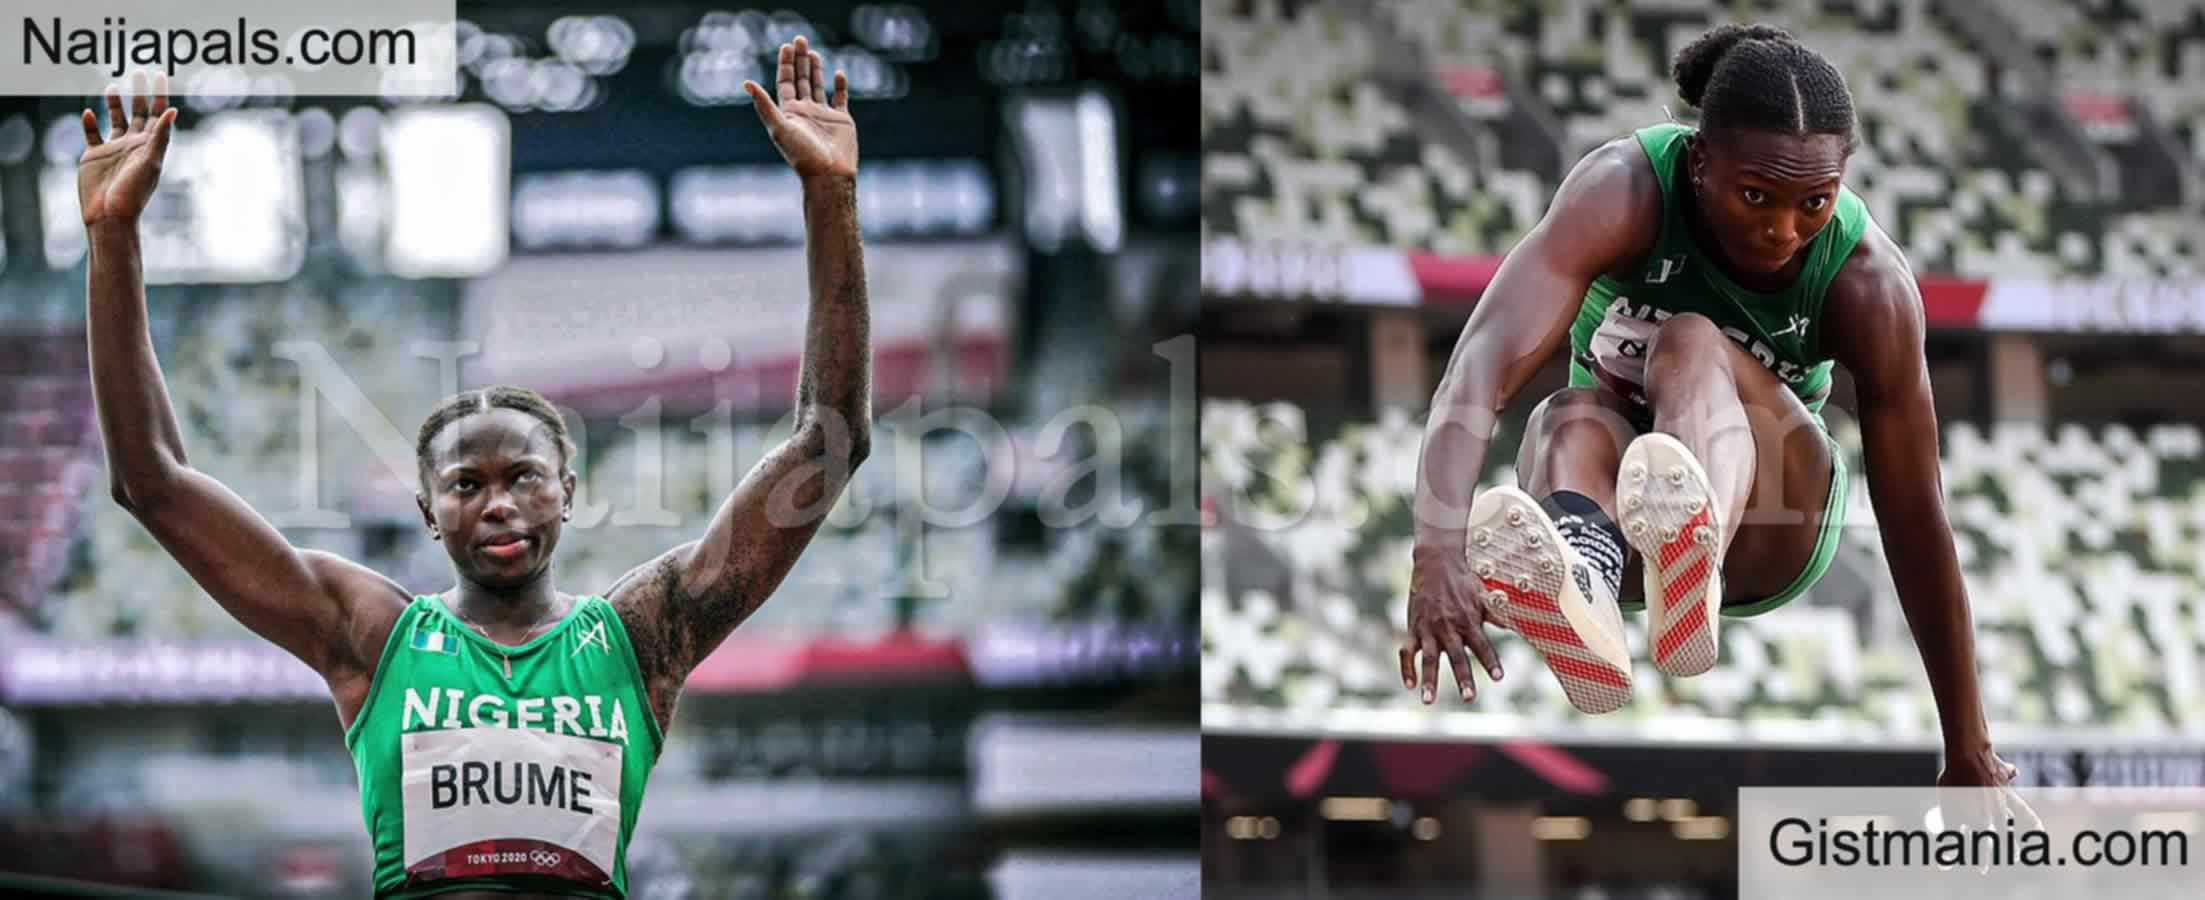 <img alt='.' class='lazyload' data-src='https://img.gistmania.com/emot/news.gif' /> <b>Ese Brume Wins Nigeria's First Medal In Tokyo 2020 Olympics By Coming Third In Long Jump</b>